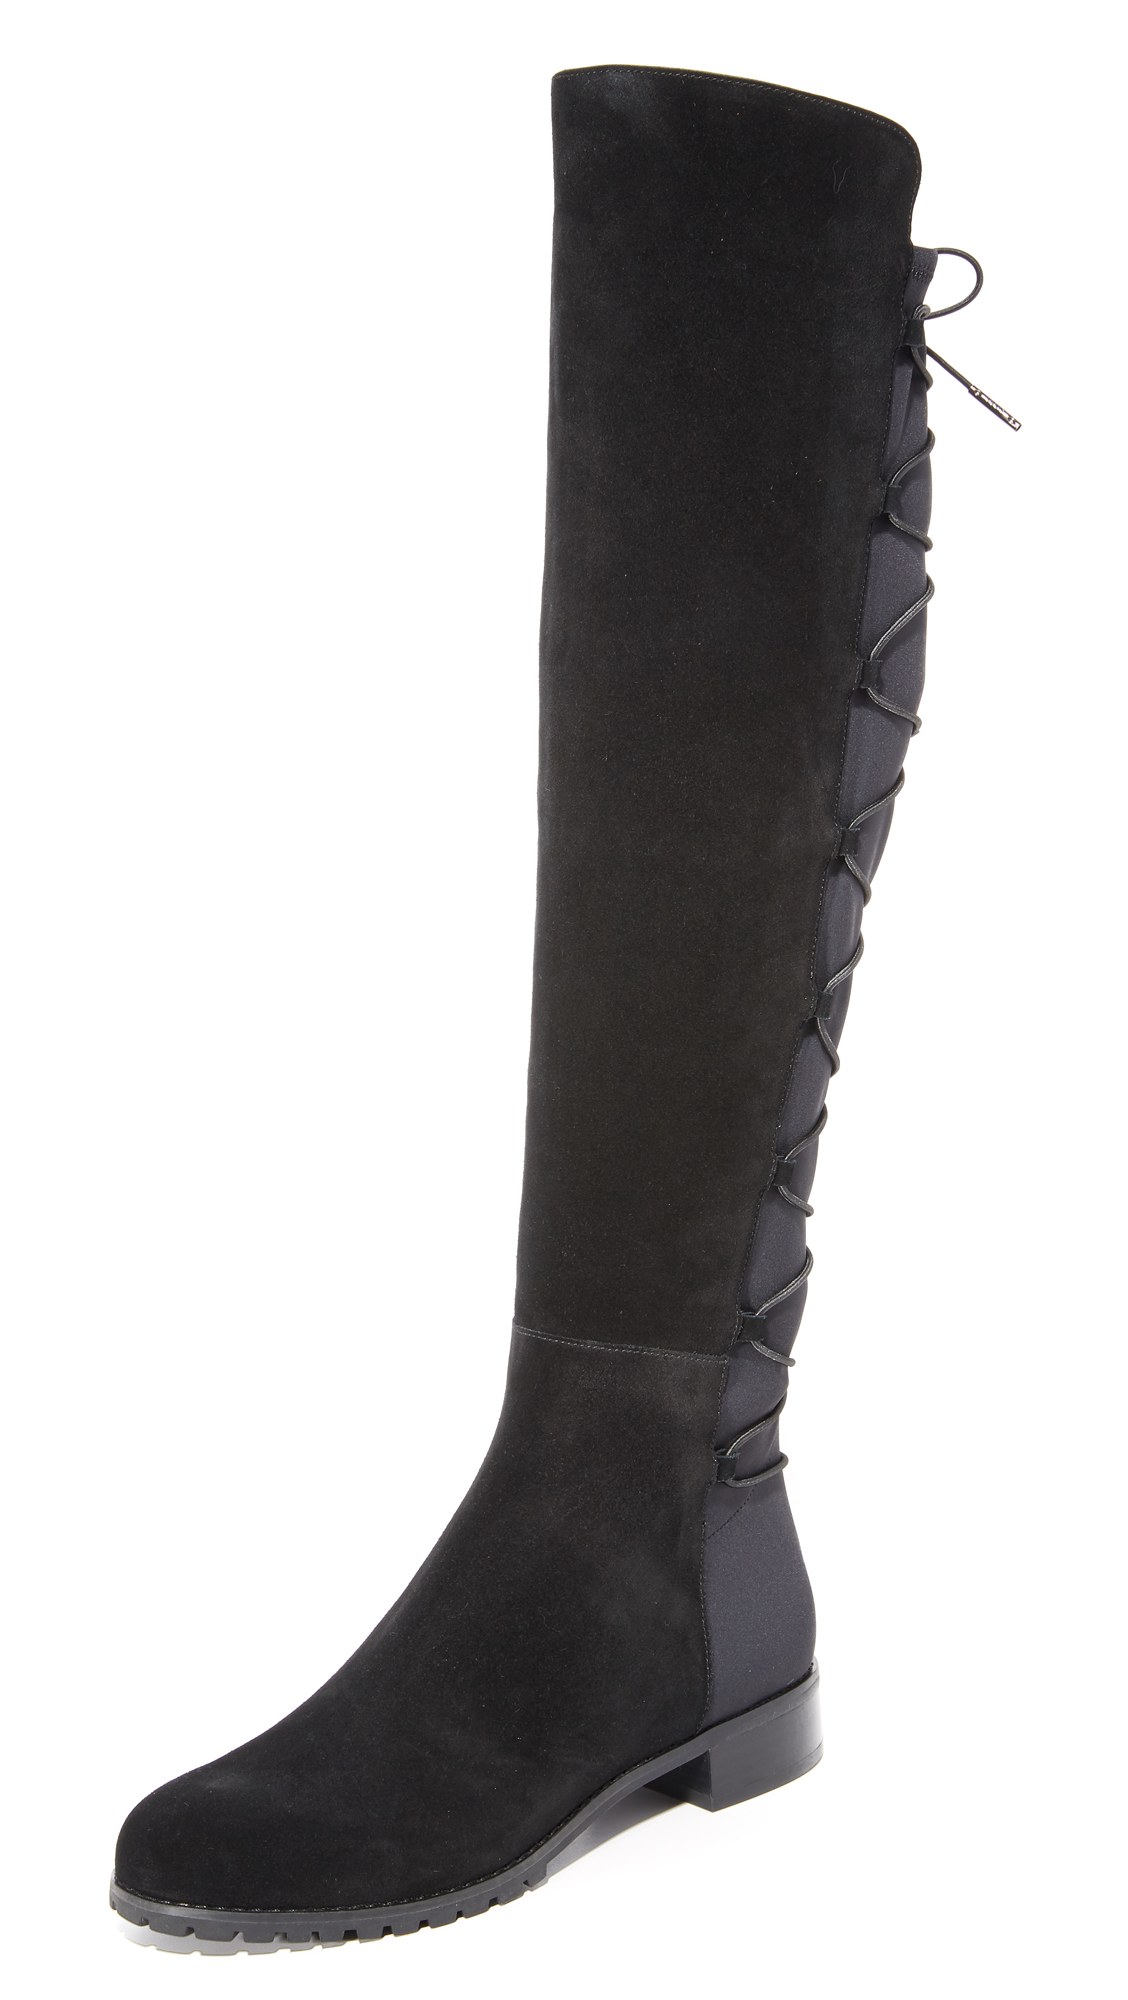 Michael Michael Kors Skye Over The Knee Boots - Black